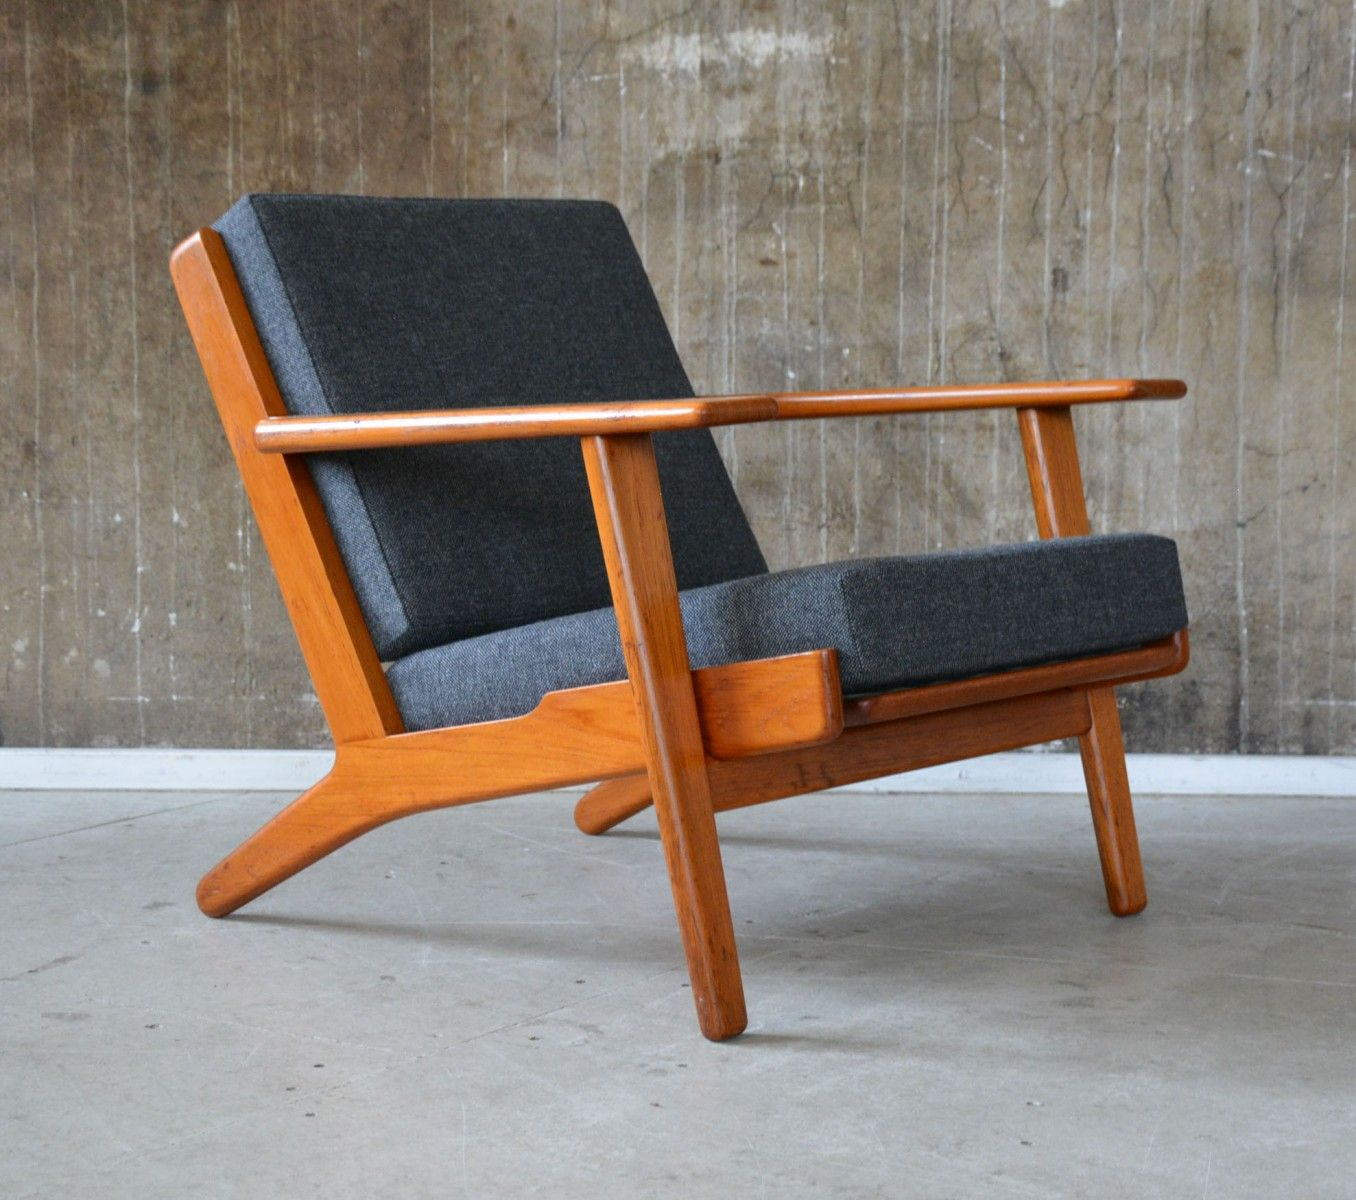 GE 290 Lounge Chair Designed By Hans J. Wegner For Getama During The 1960s